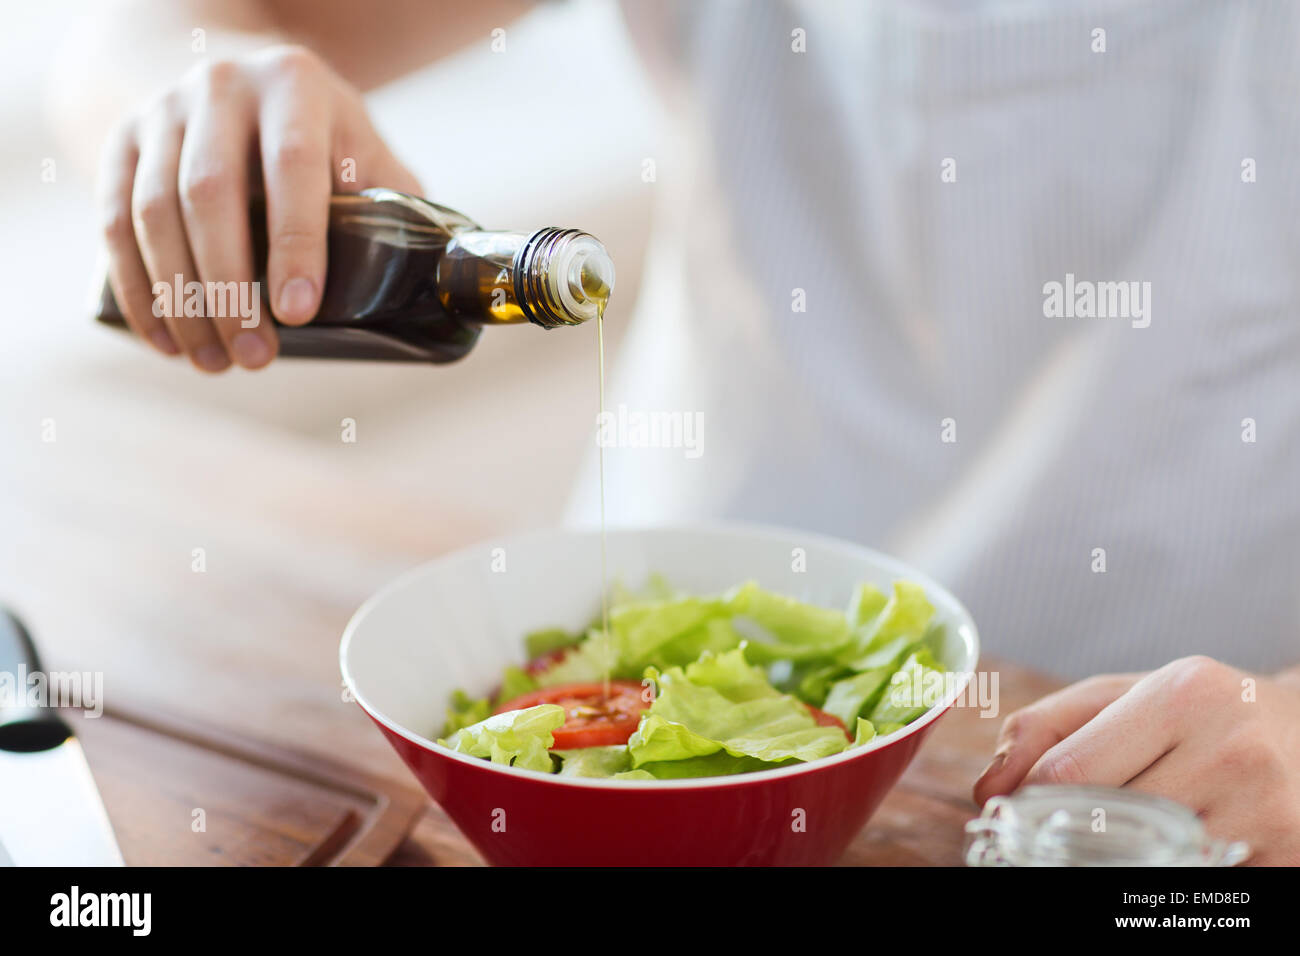 close up of male hands flavouring salad in a bowl - Stock Image